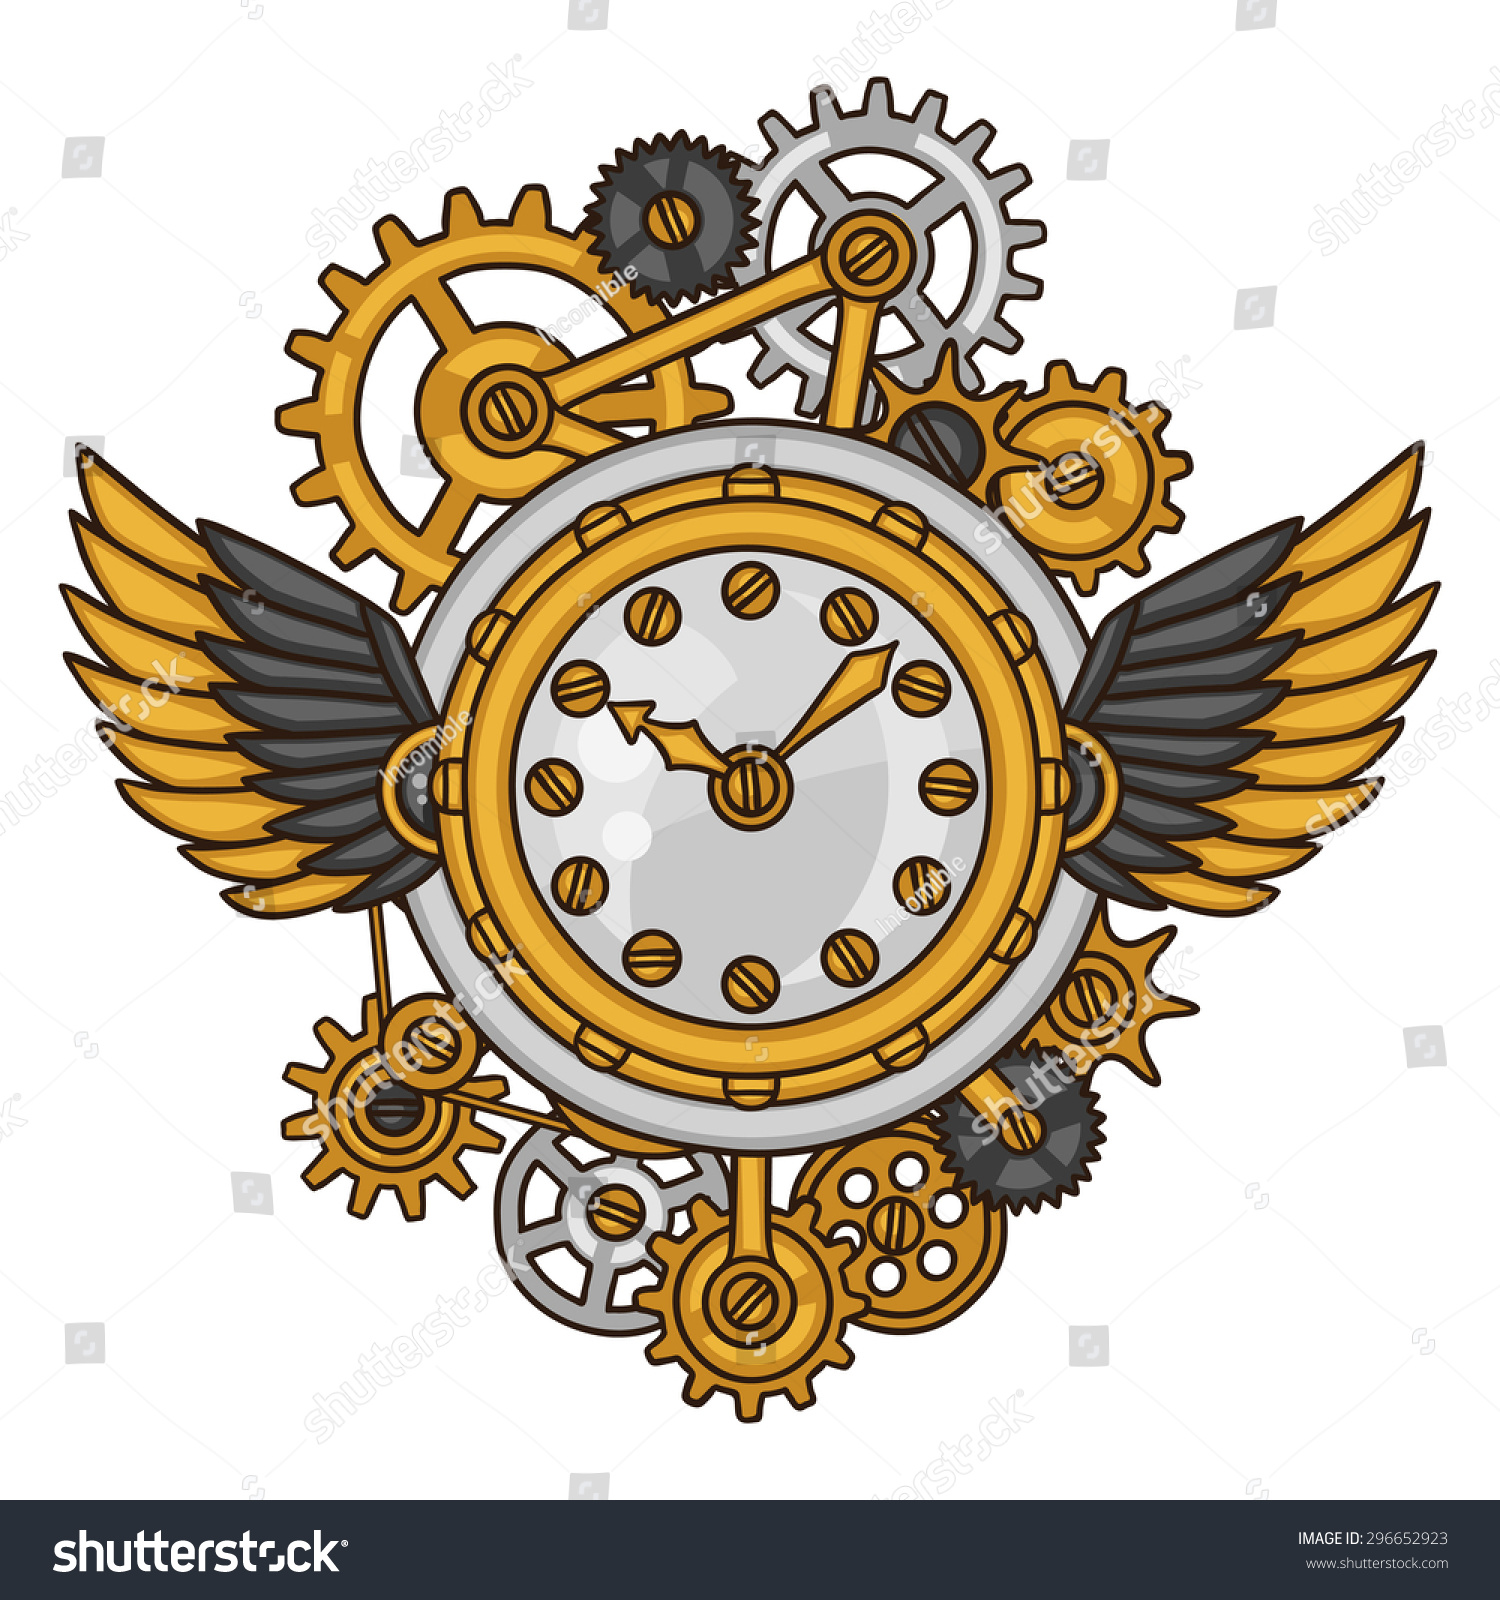 Steampunk clock collage of metal gears in doodle style.